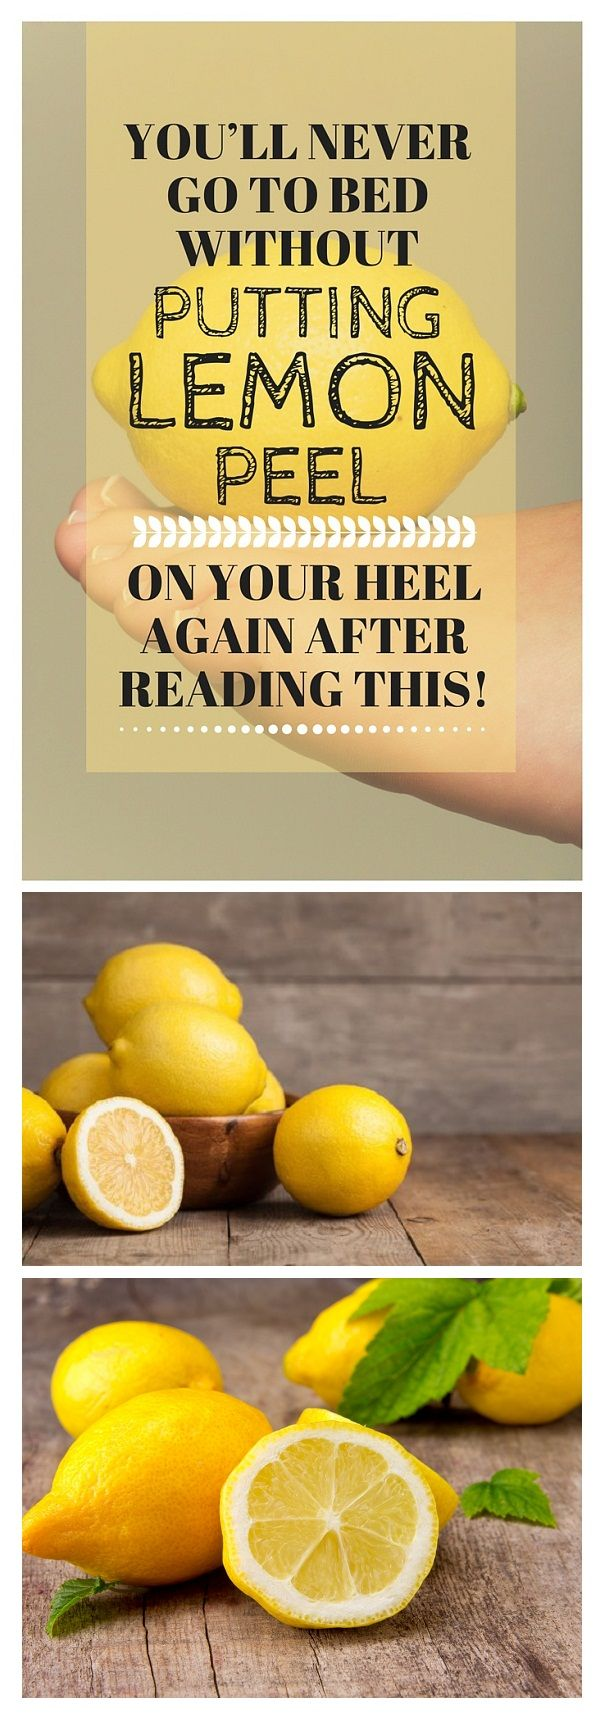 You'll Never Go to Bed Without Putting Lemon Peel on Your Heel Again